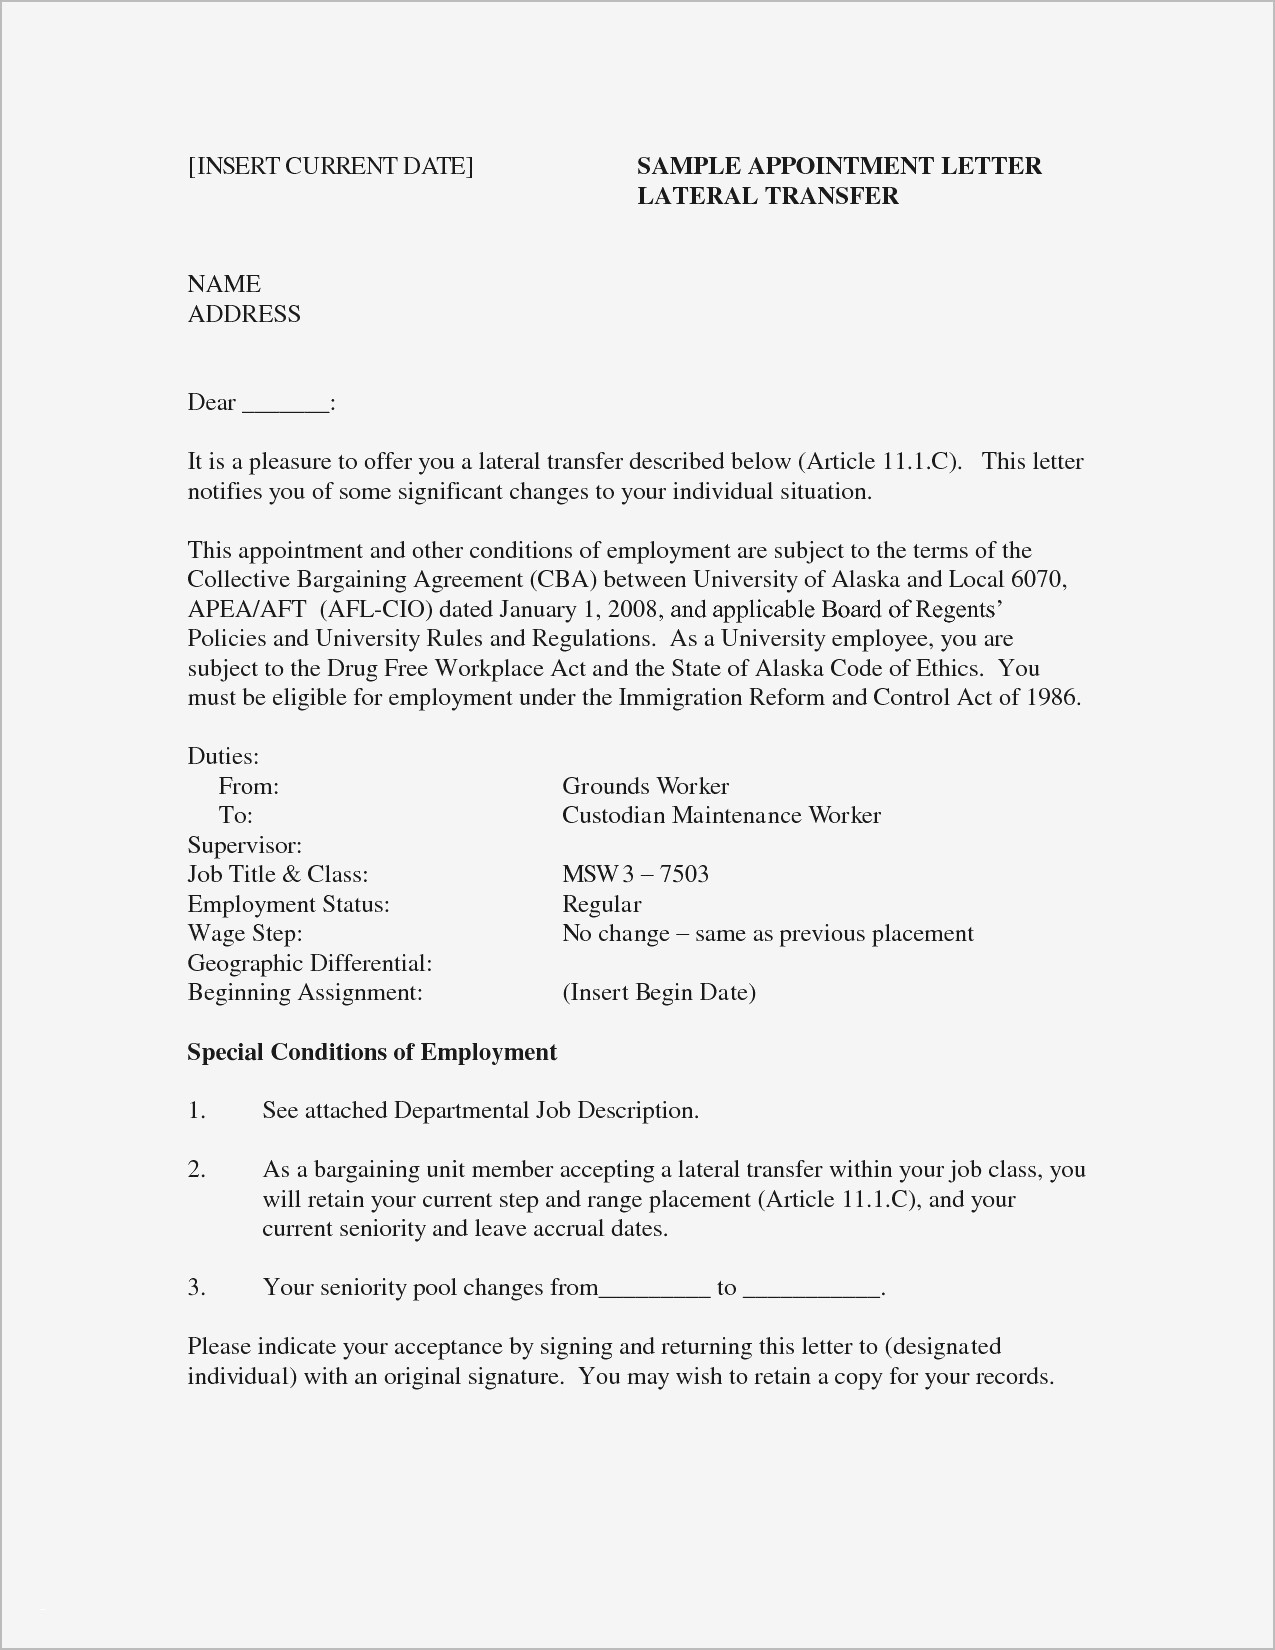 Another Word for Multitasking On Resume - Another Word for Multitasking Resume